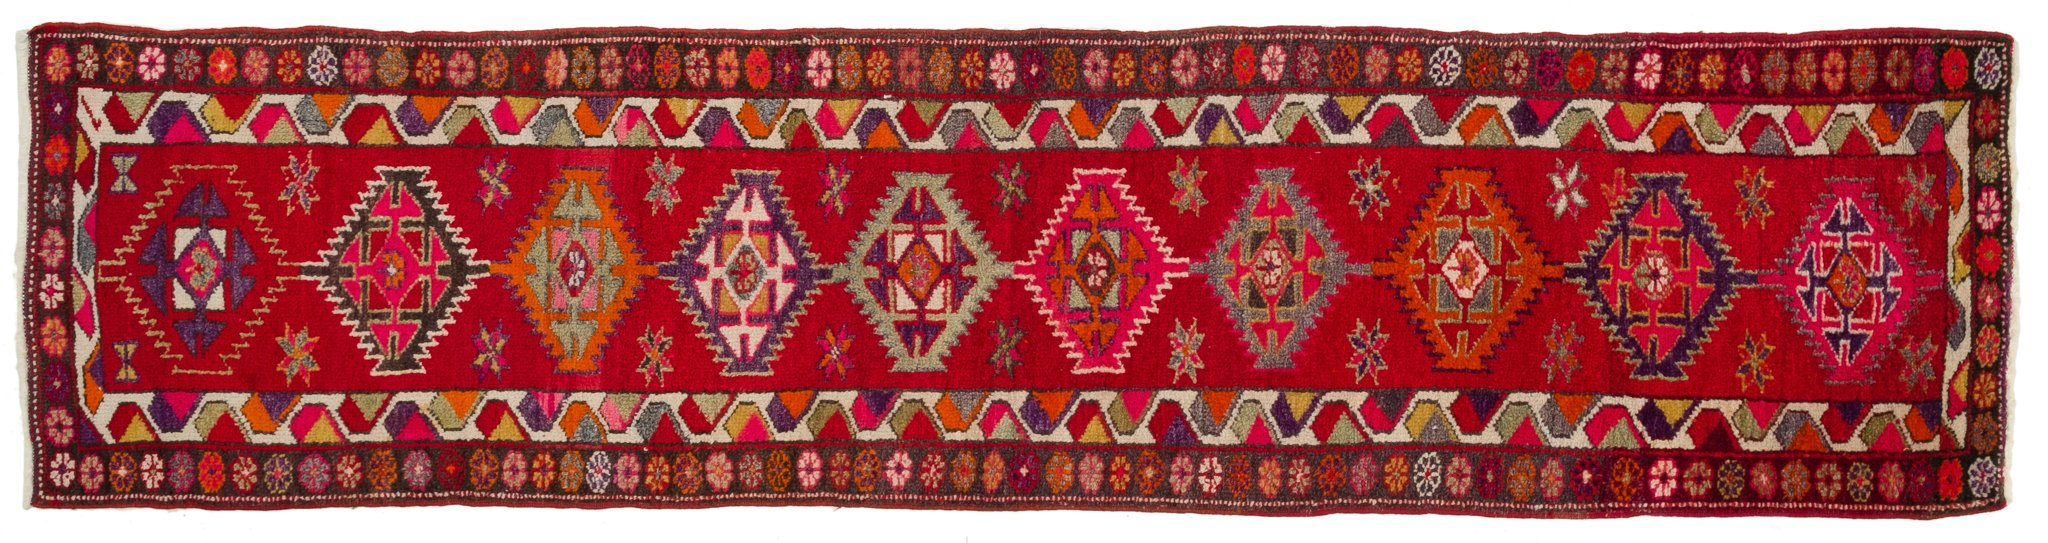 Vintage Turkish Runner Rug Anelija